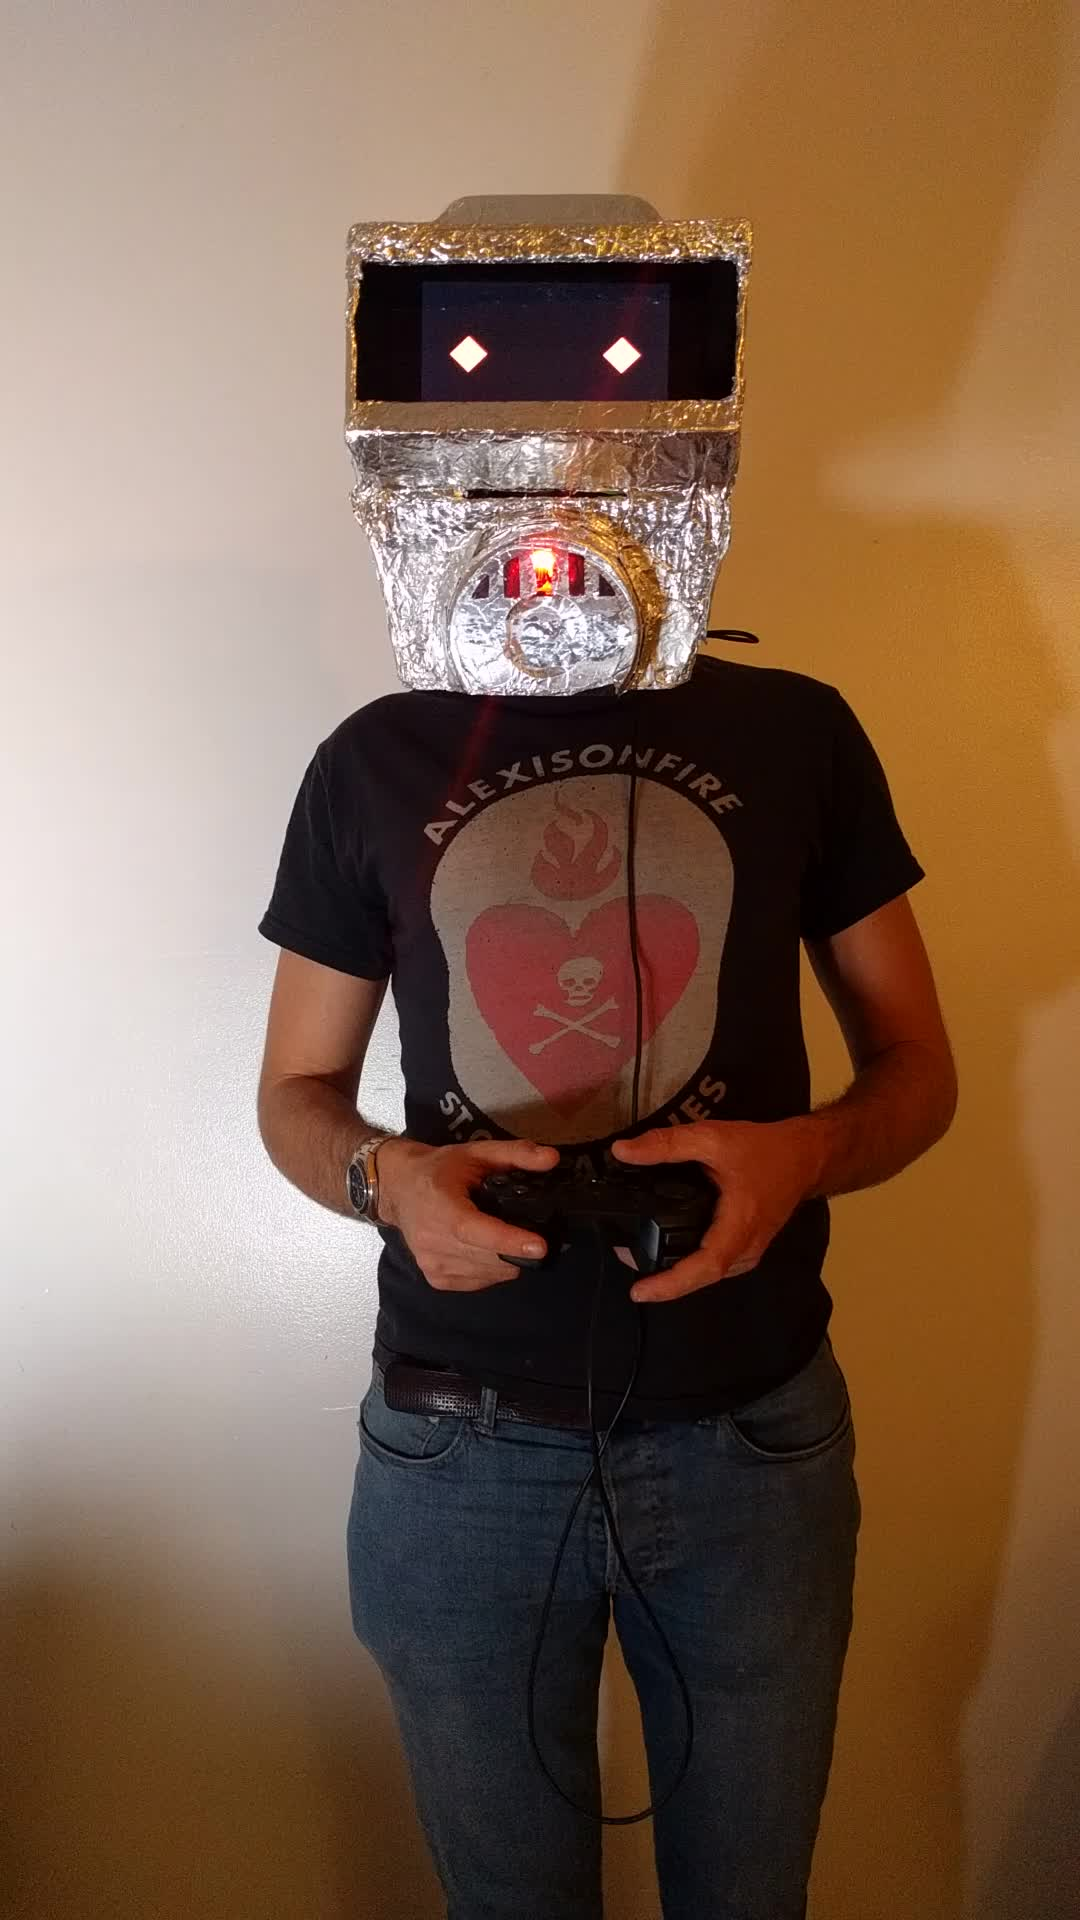 DIY, costume, home made, mask, raspberry pi, robot, rpi, This years Halloween costume got a bit out of control GIFs